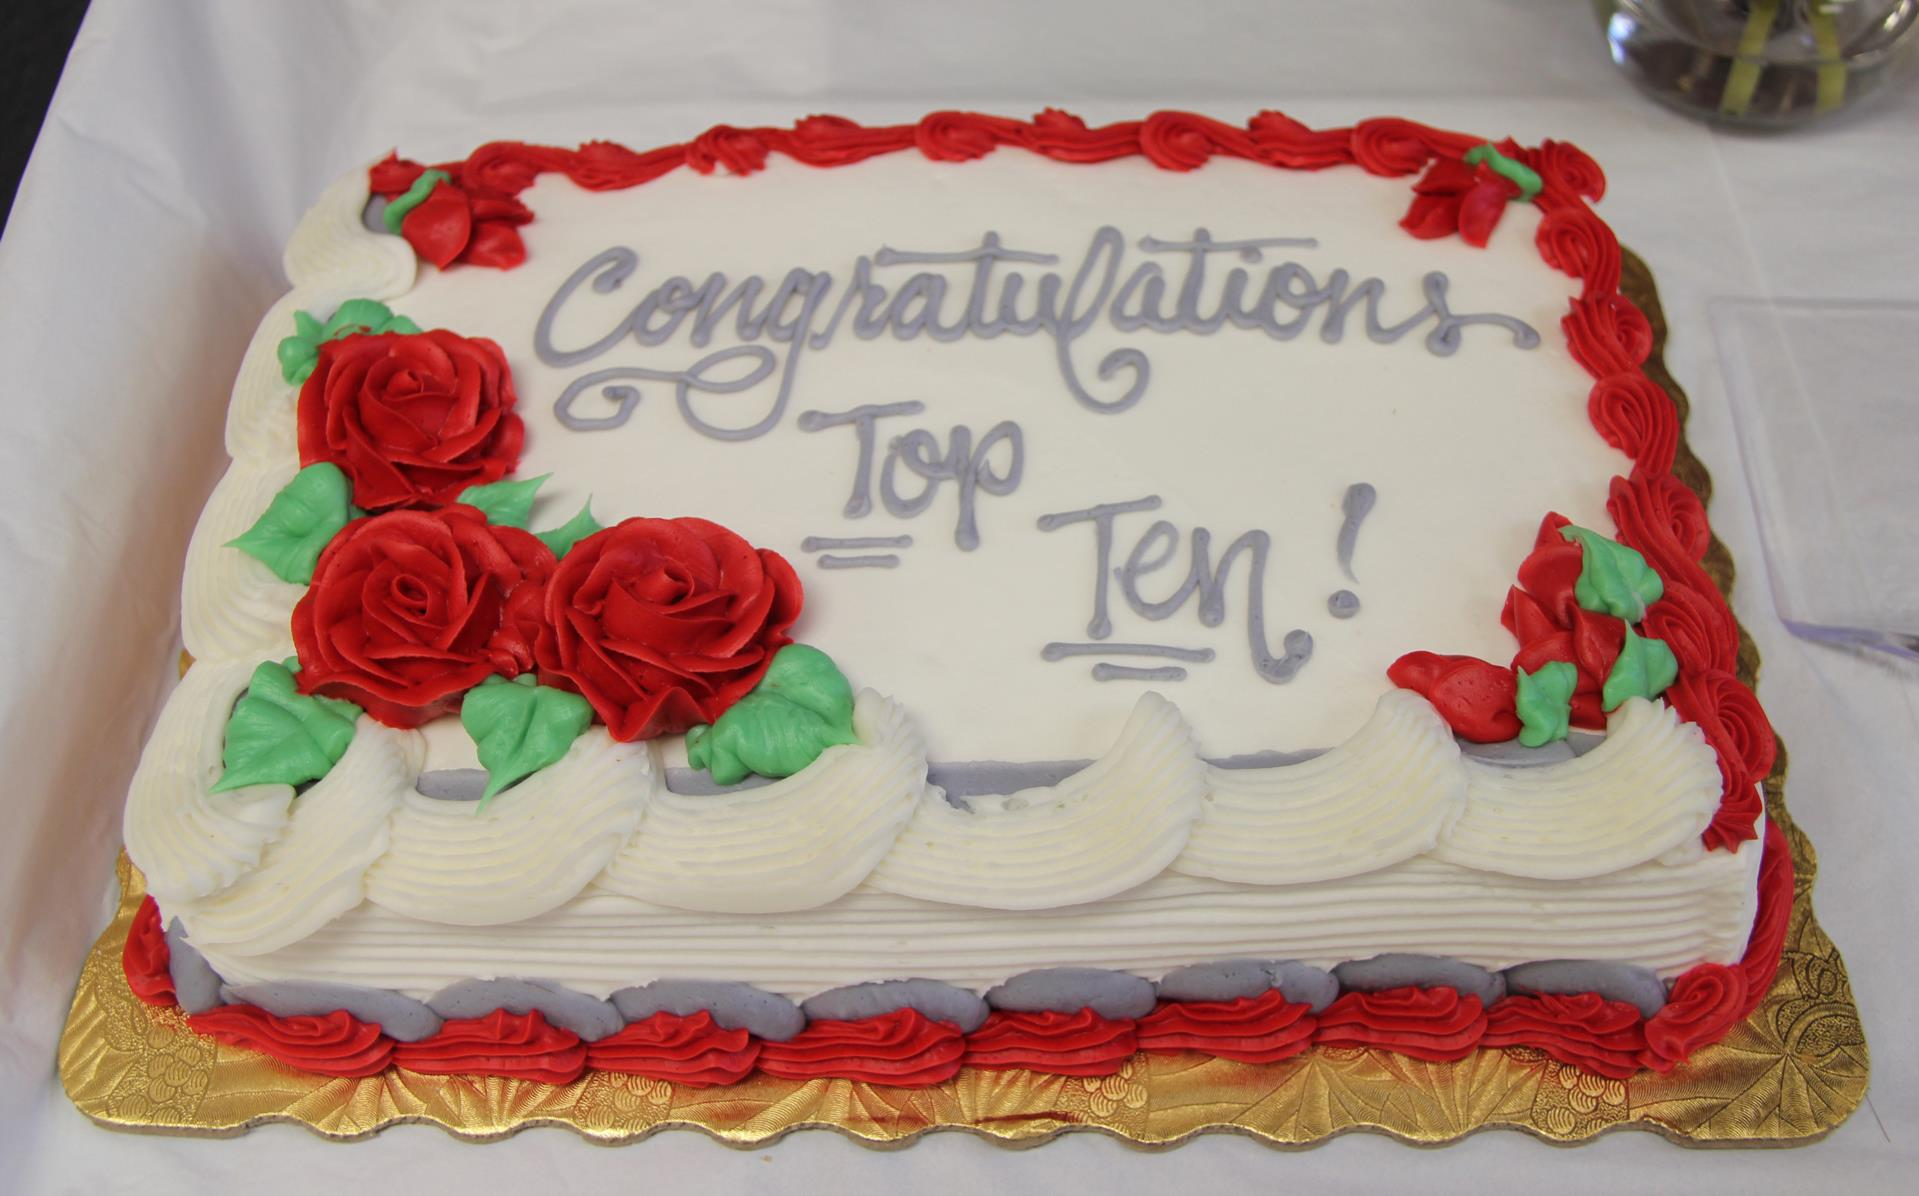 congratulations top ten cake